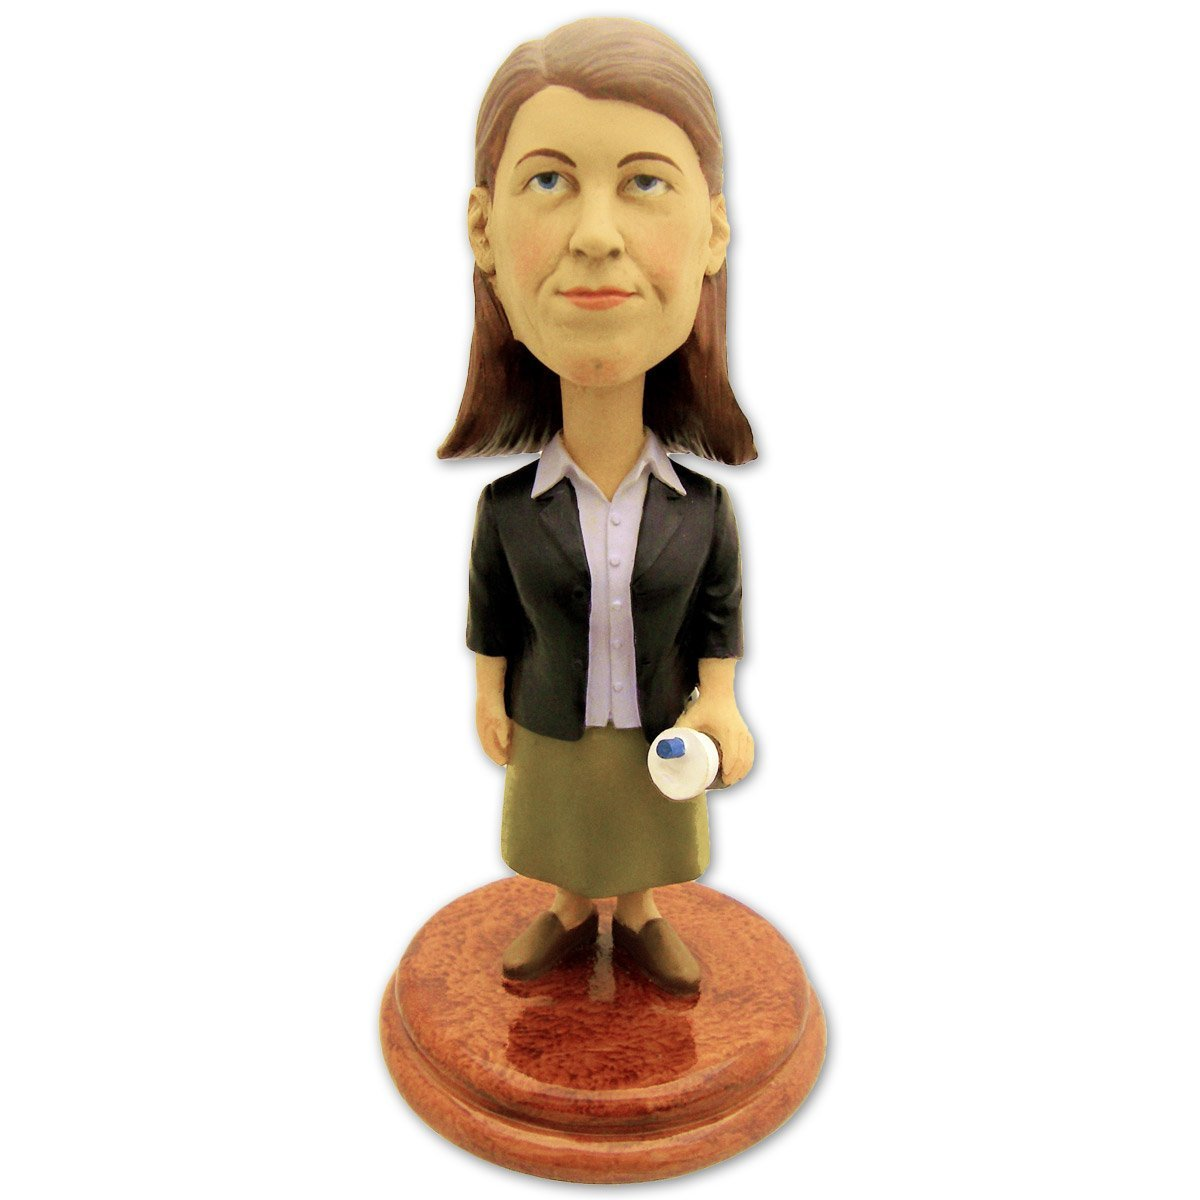 Meredith Palmer Bobblehead – The Office